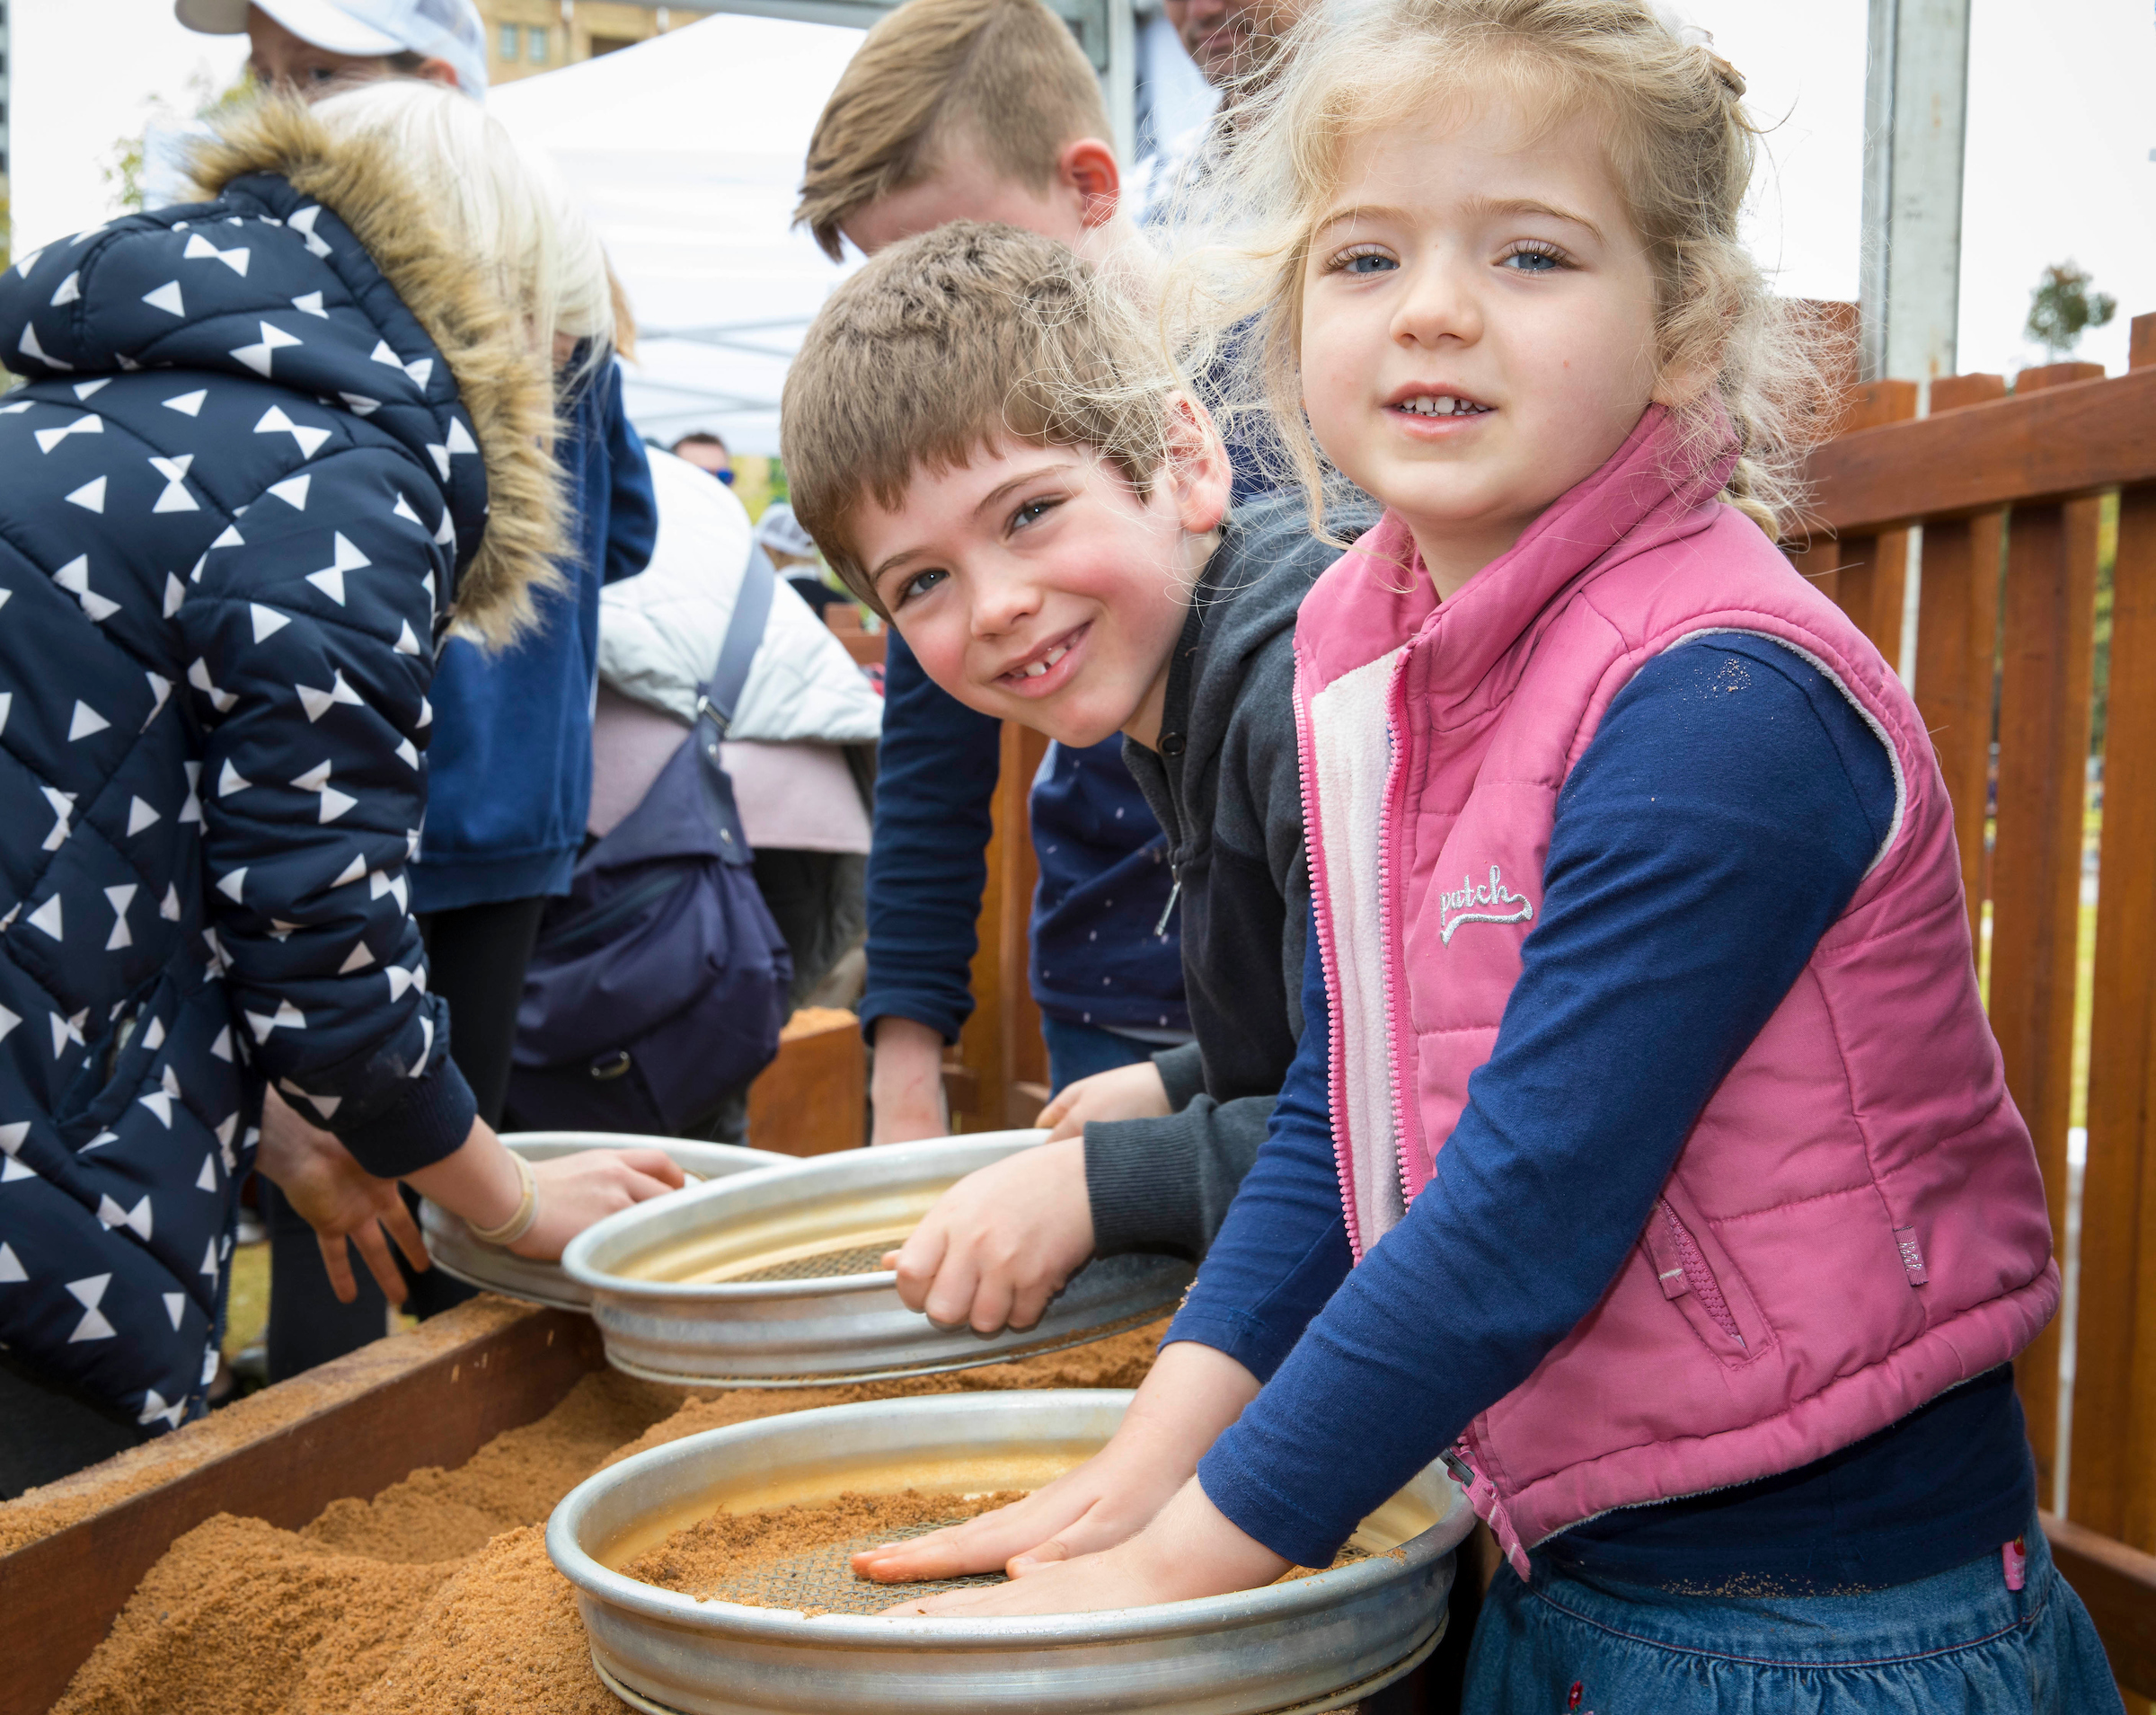 Gold panning was a hit!